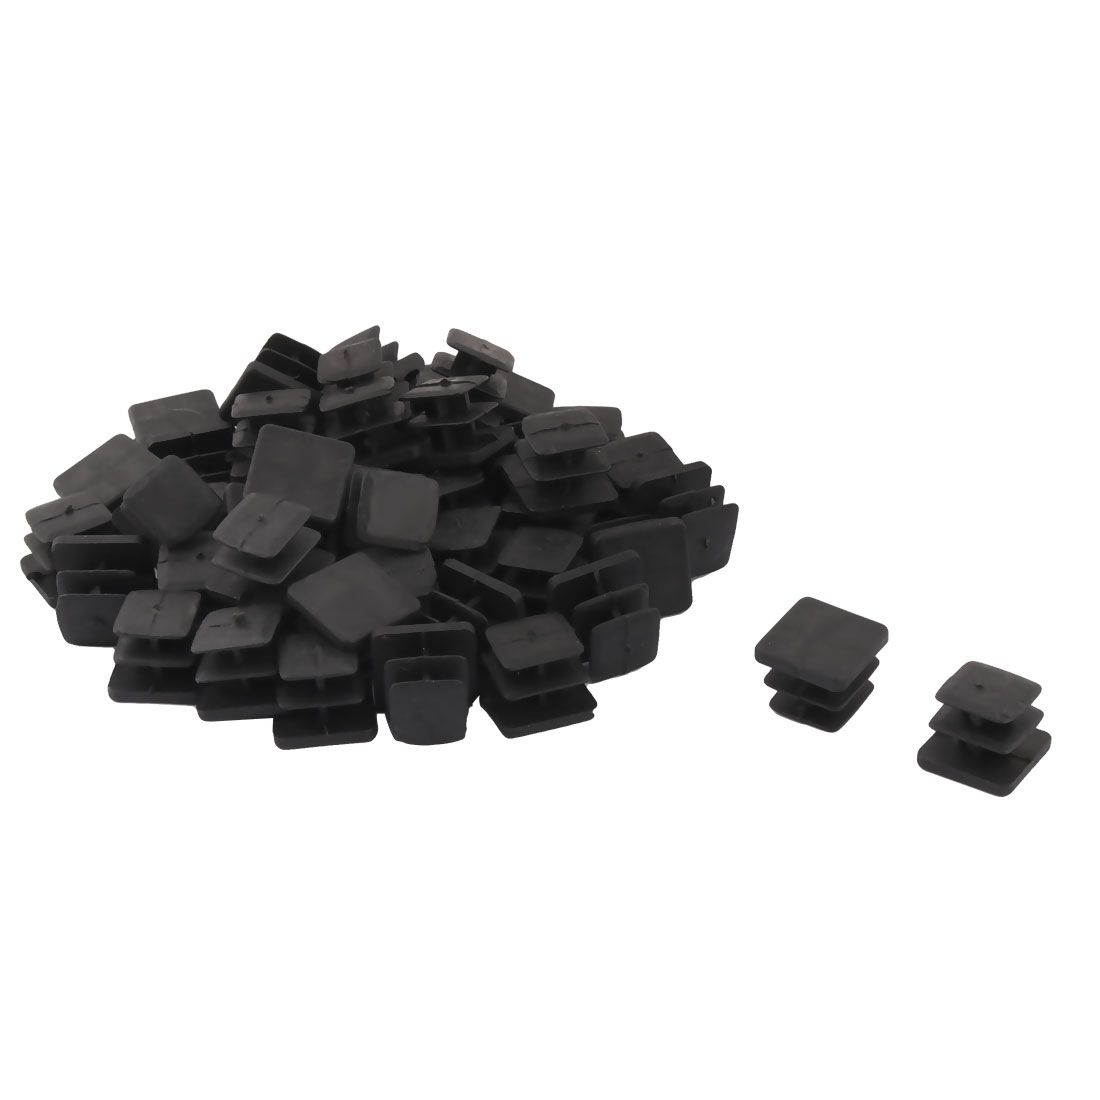 Plastic Square Design Tube Insert End Blanking Cover Cap Black 13 x 13mm 50pcs